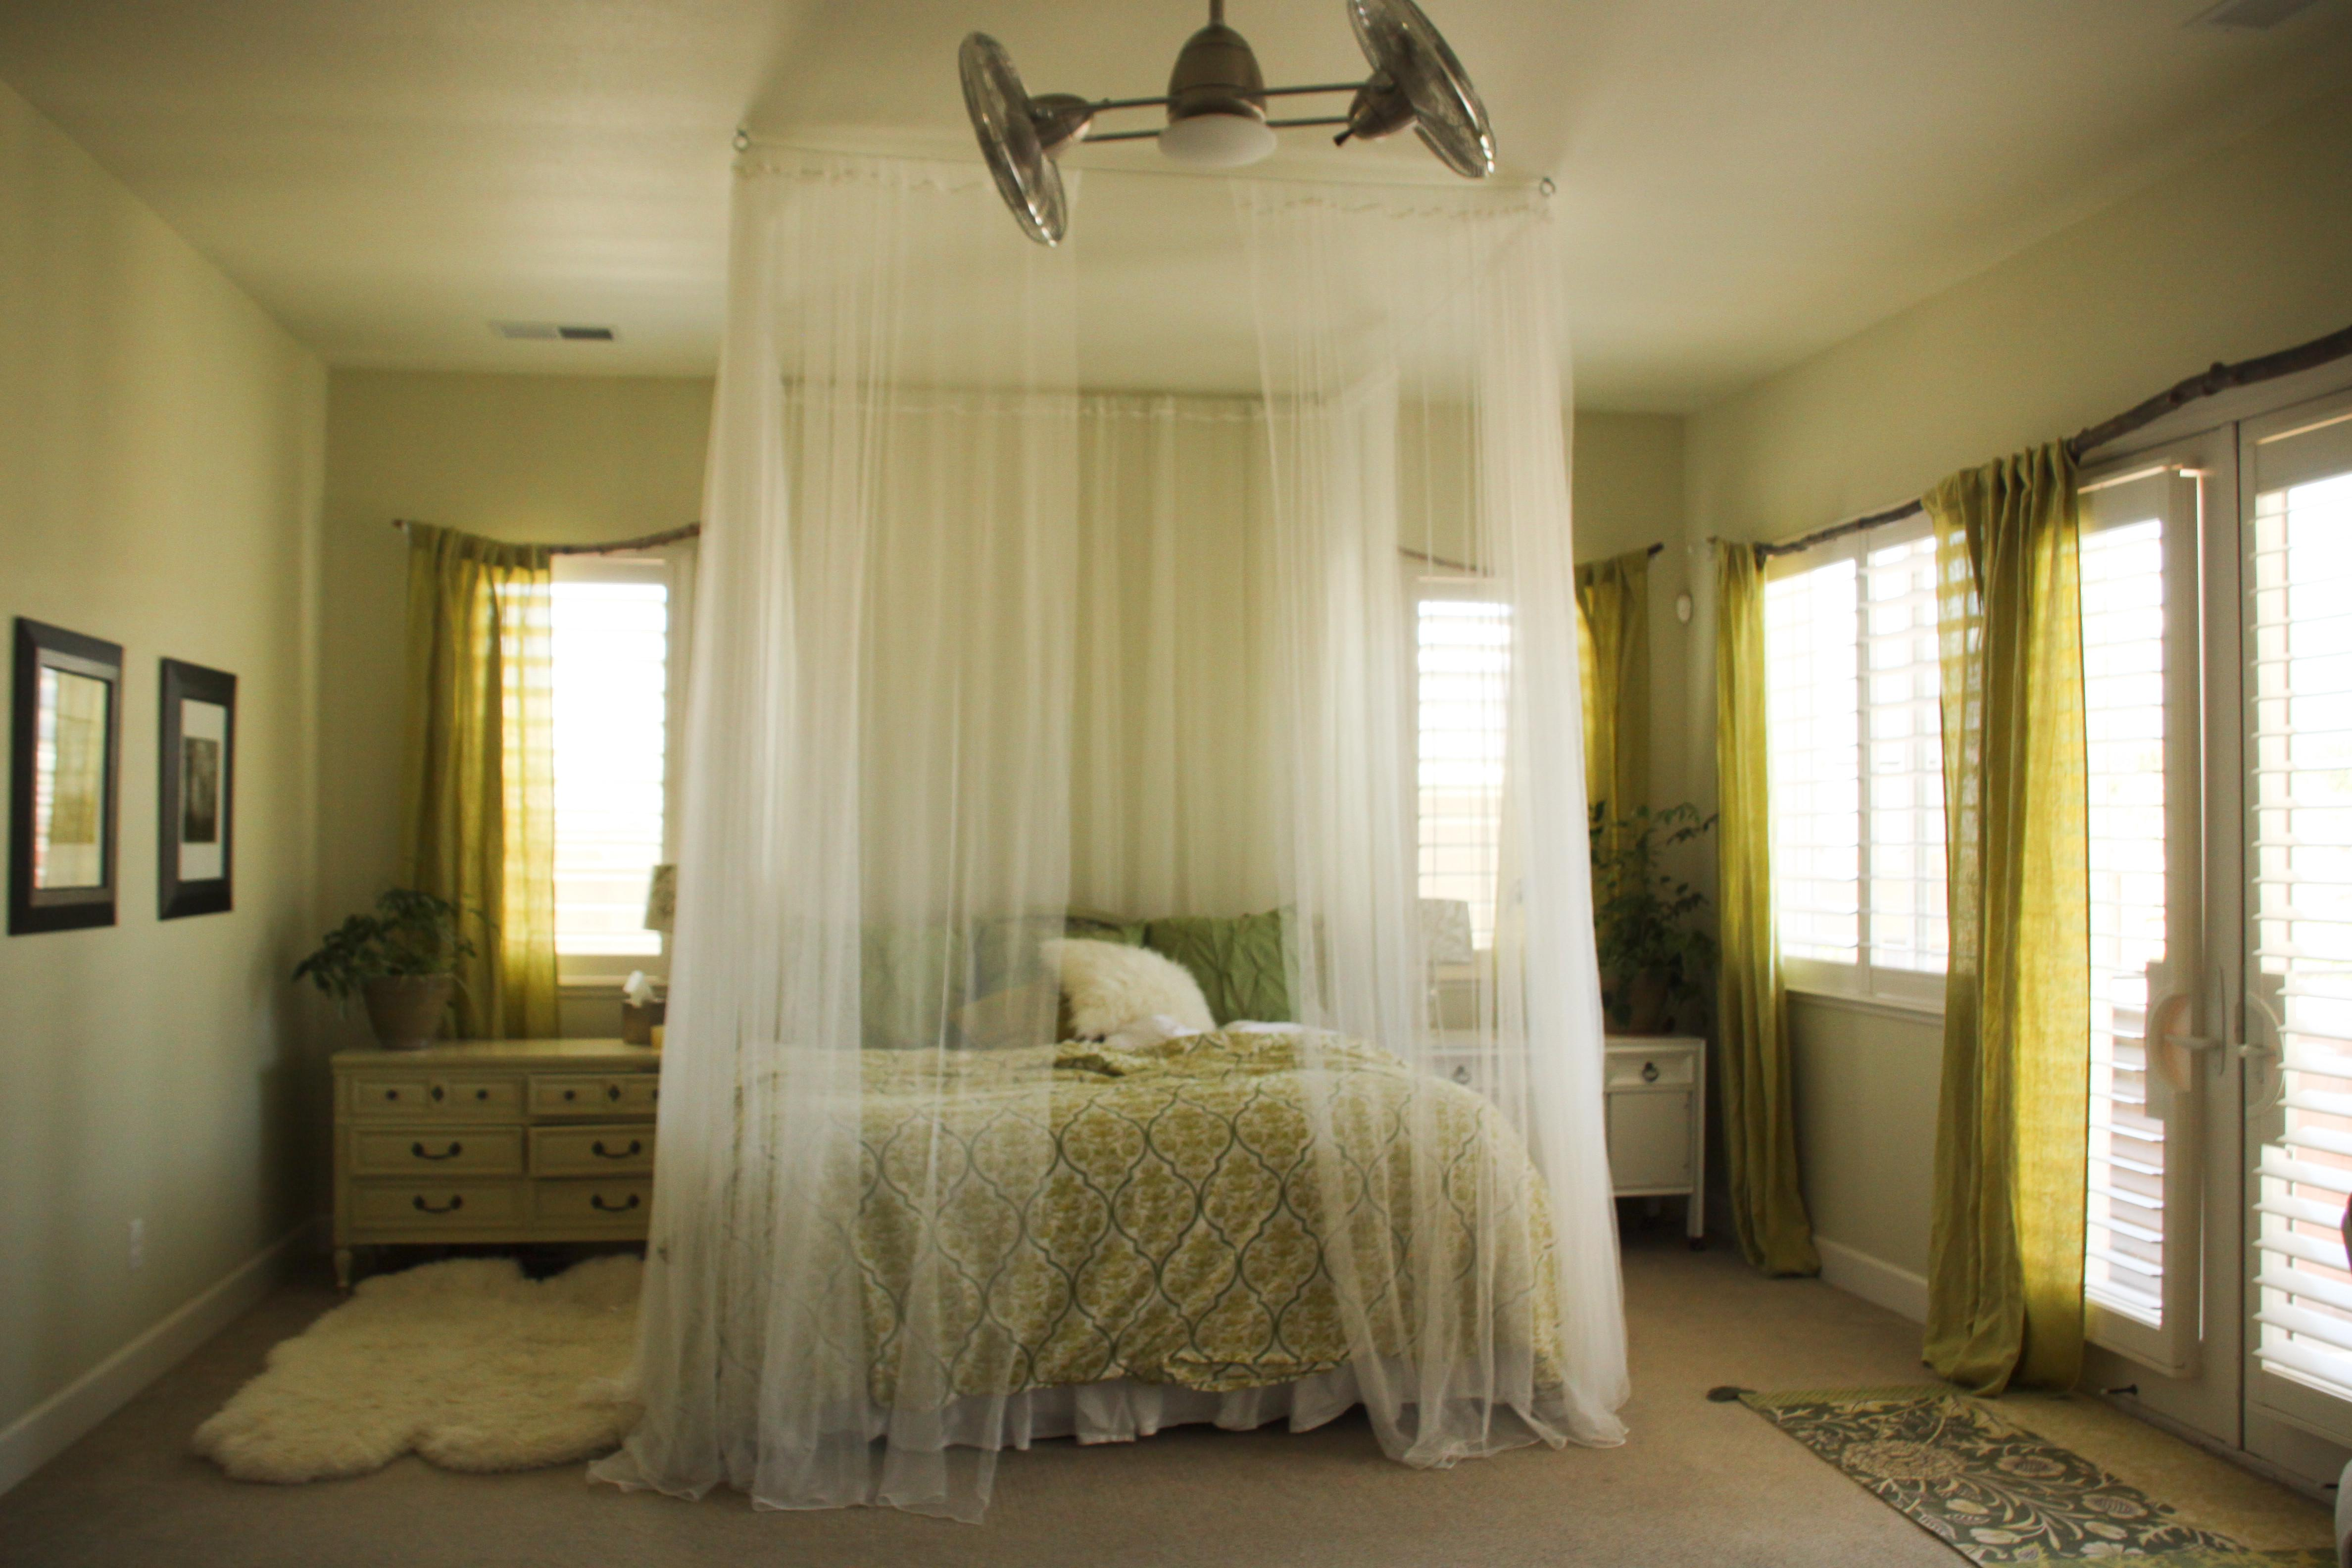 Photo Of Diy Ceiling Mounted Bed Canopies That Will Add Charm Freshness Photo Examples Decoratorist